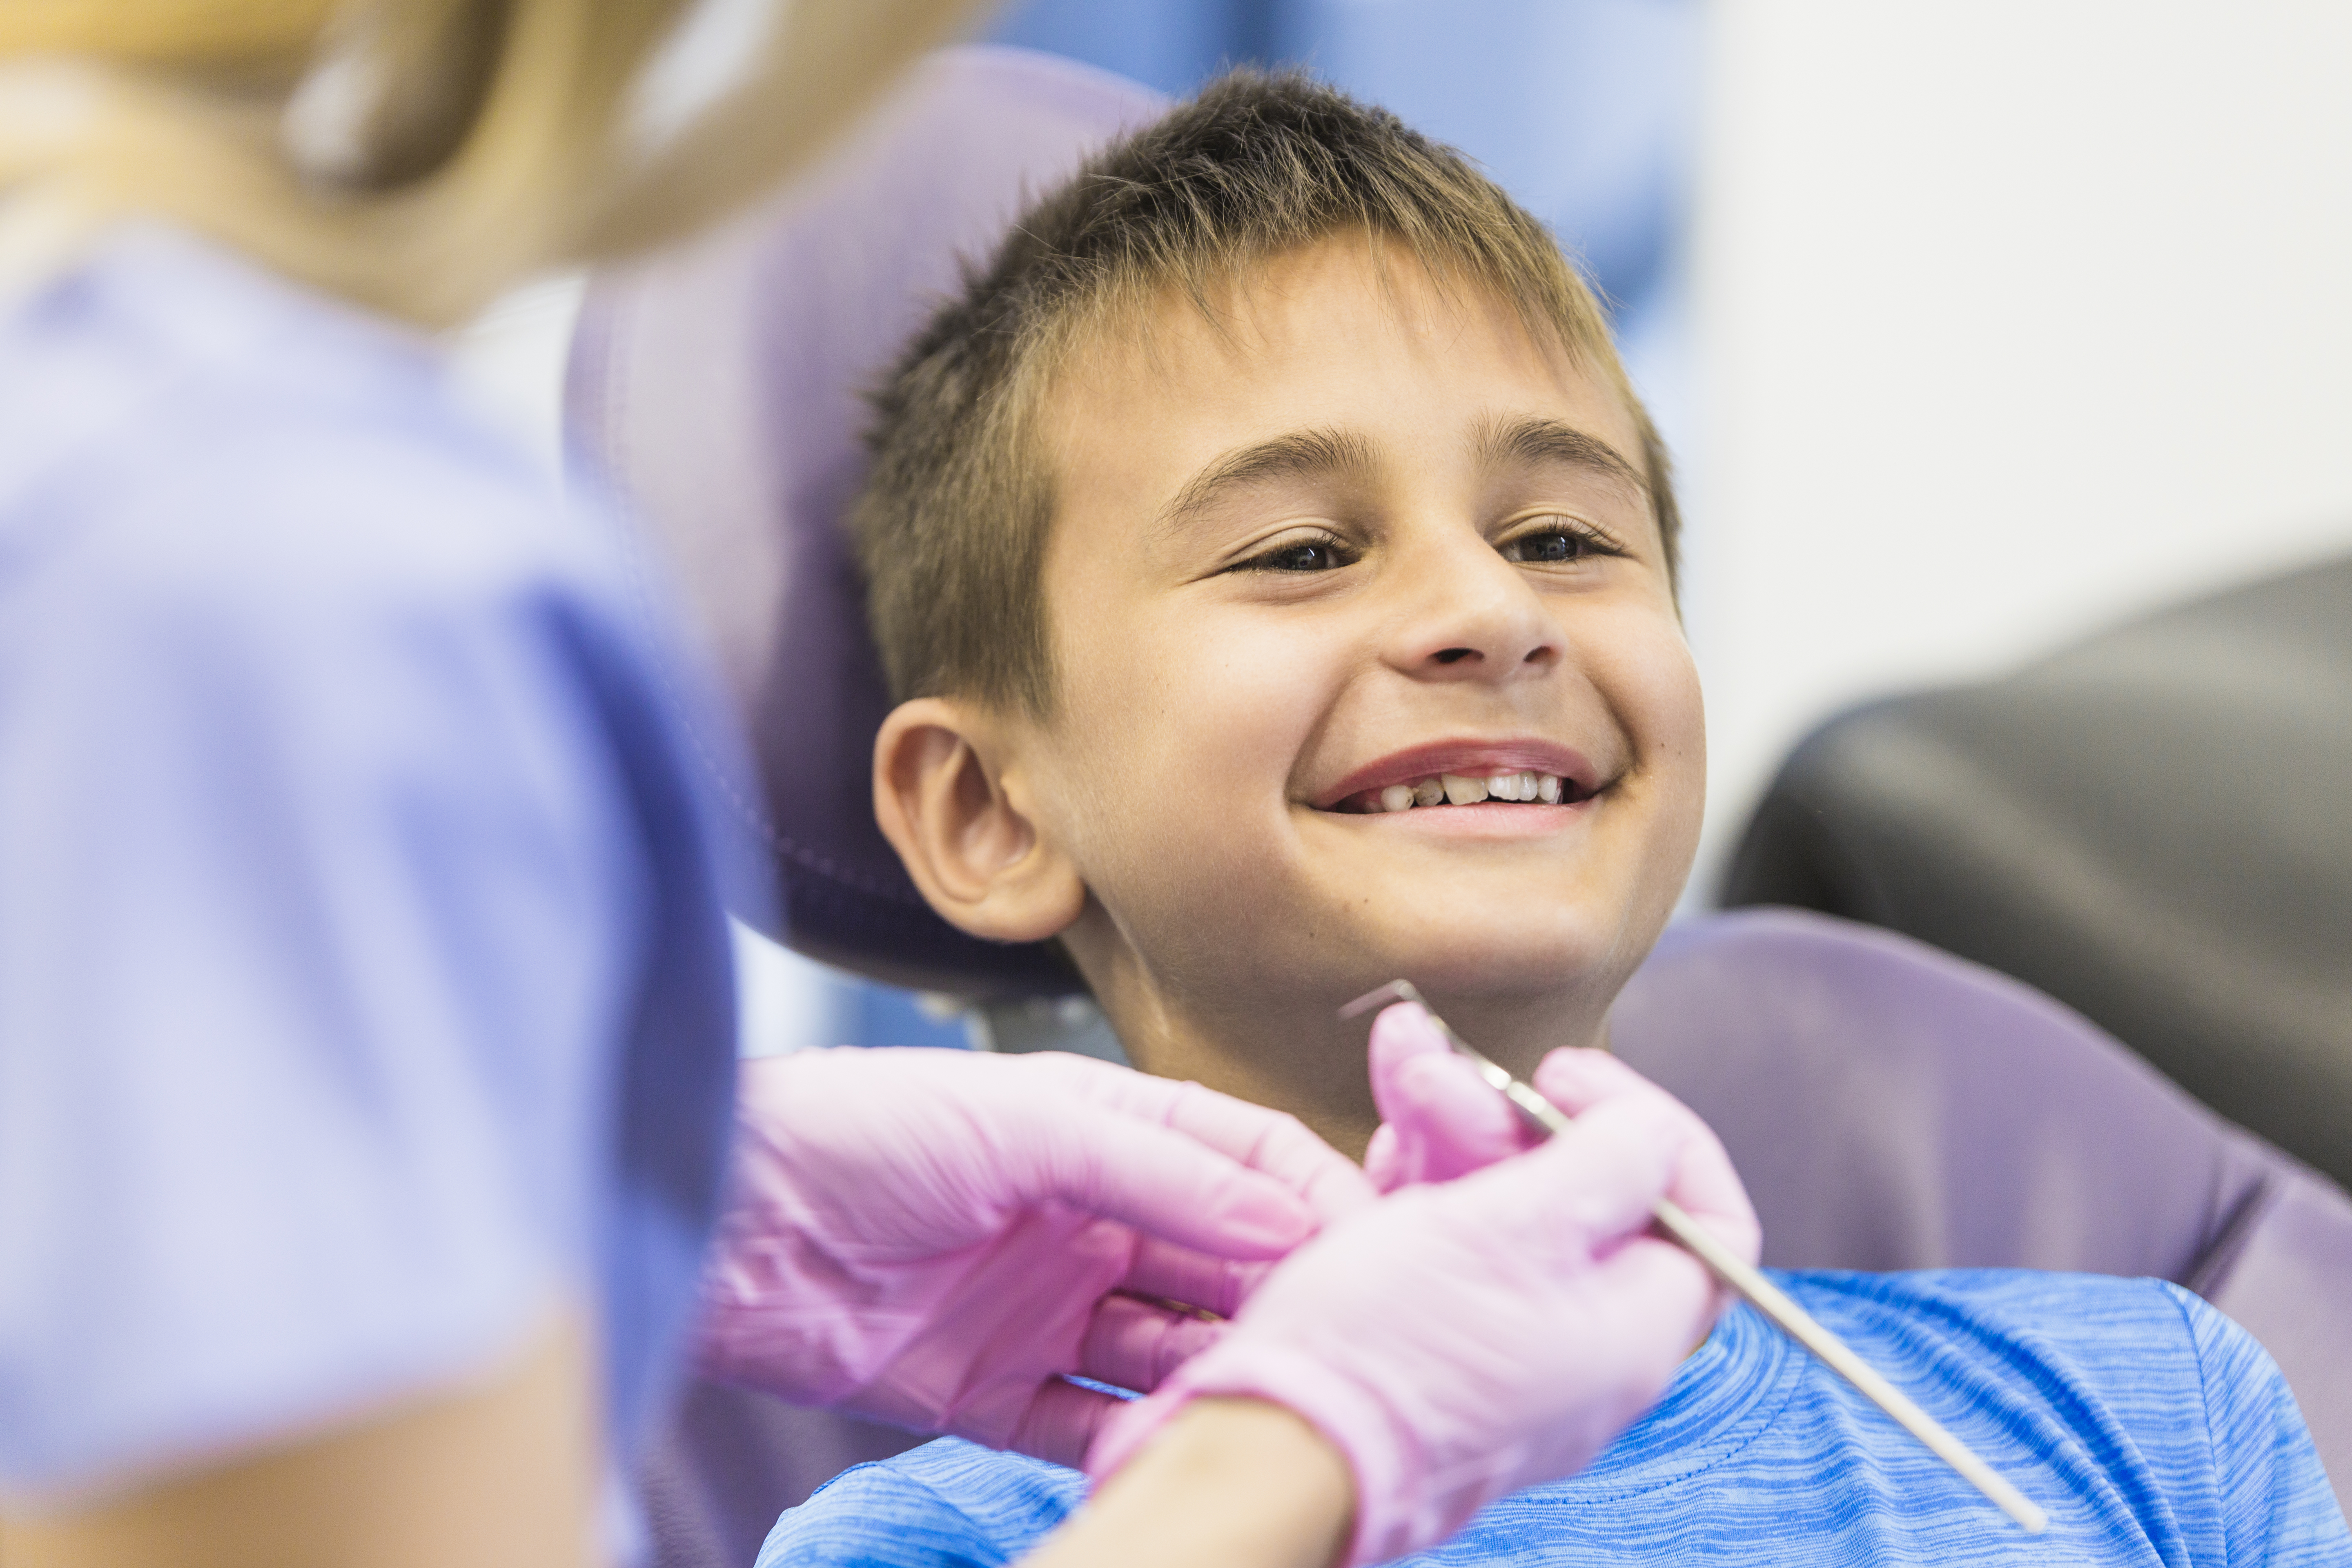 Oral Health of Children and Early Prevention